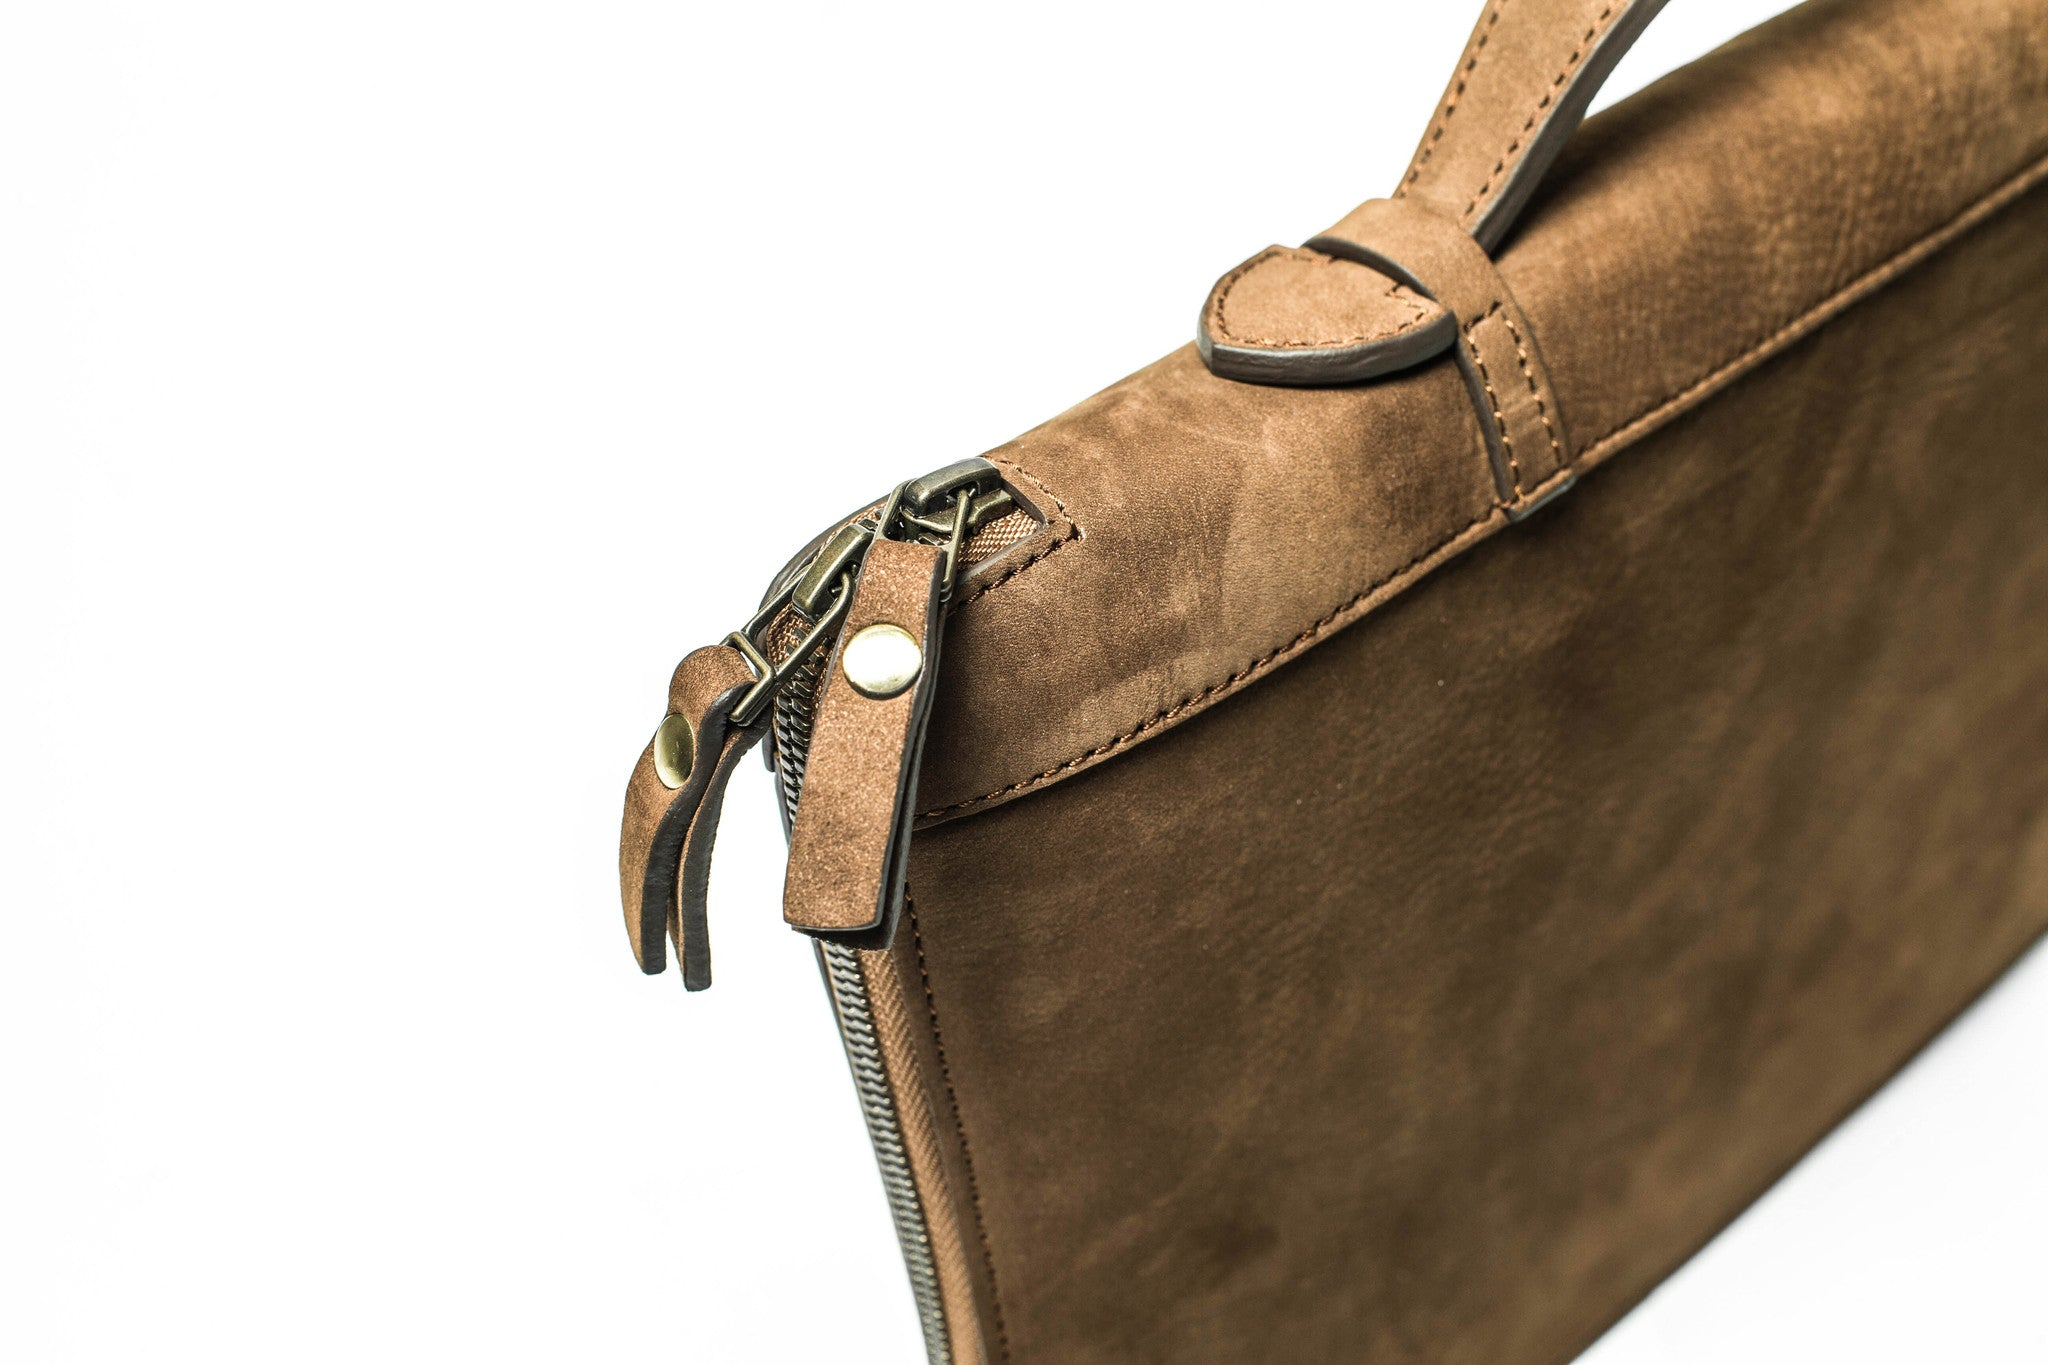 KANZEK's brown unisex leather portfolio uses a high quality full grain calf leather with a unique vintage patina.